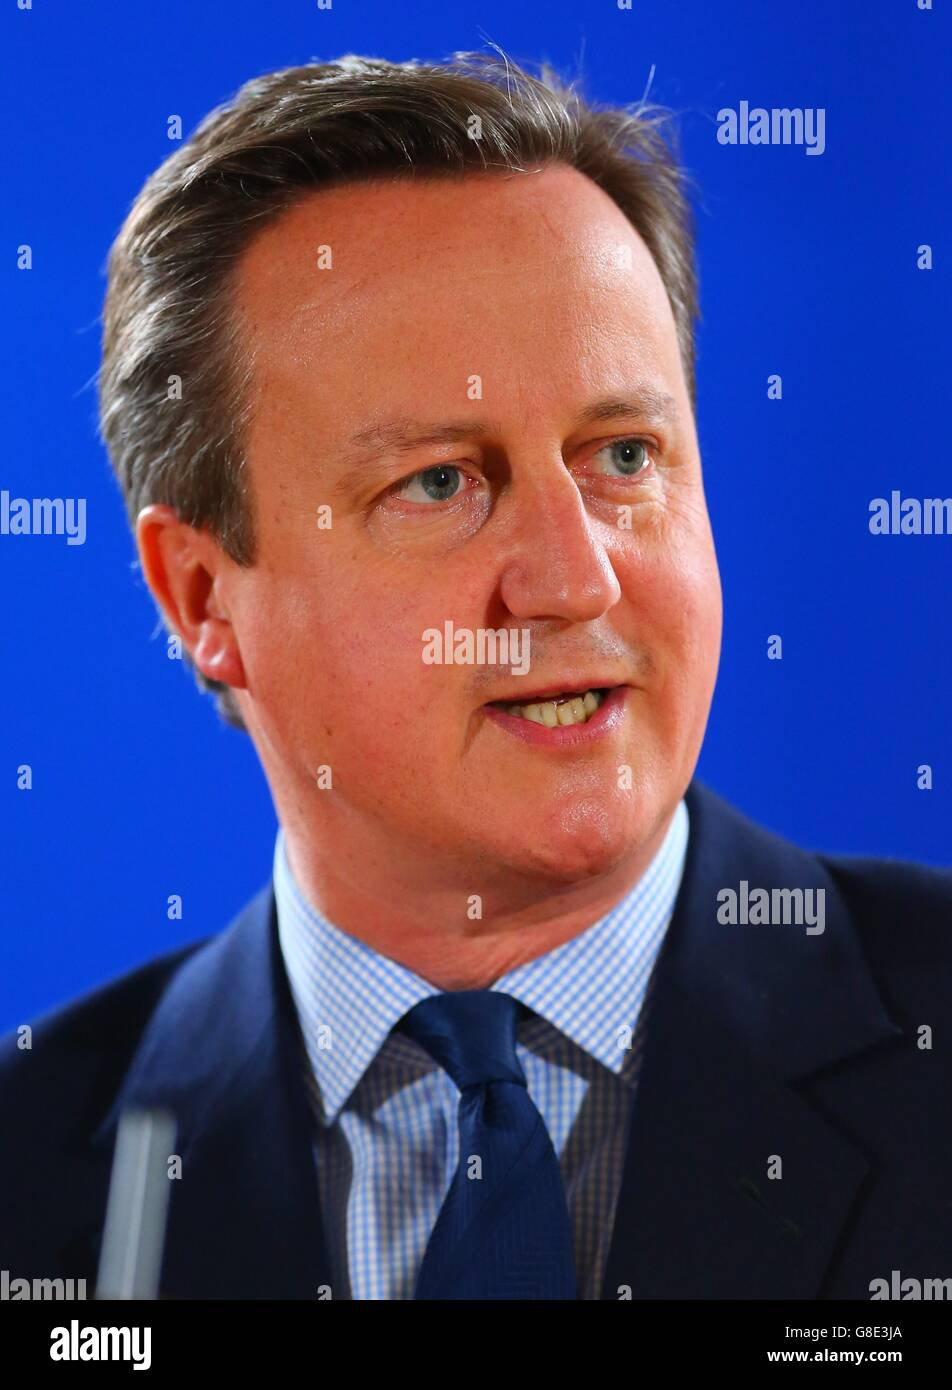 Brussels, Belgium. 28th June, 2016. British Prime Minister David Cameron holds a press conference in Brussels, Belgium, - Stock Image